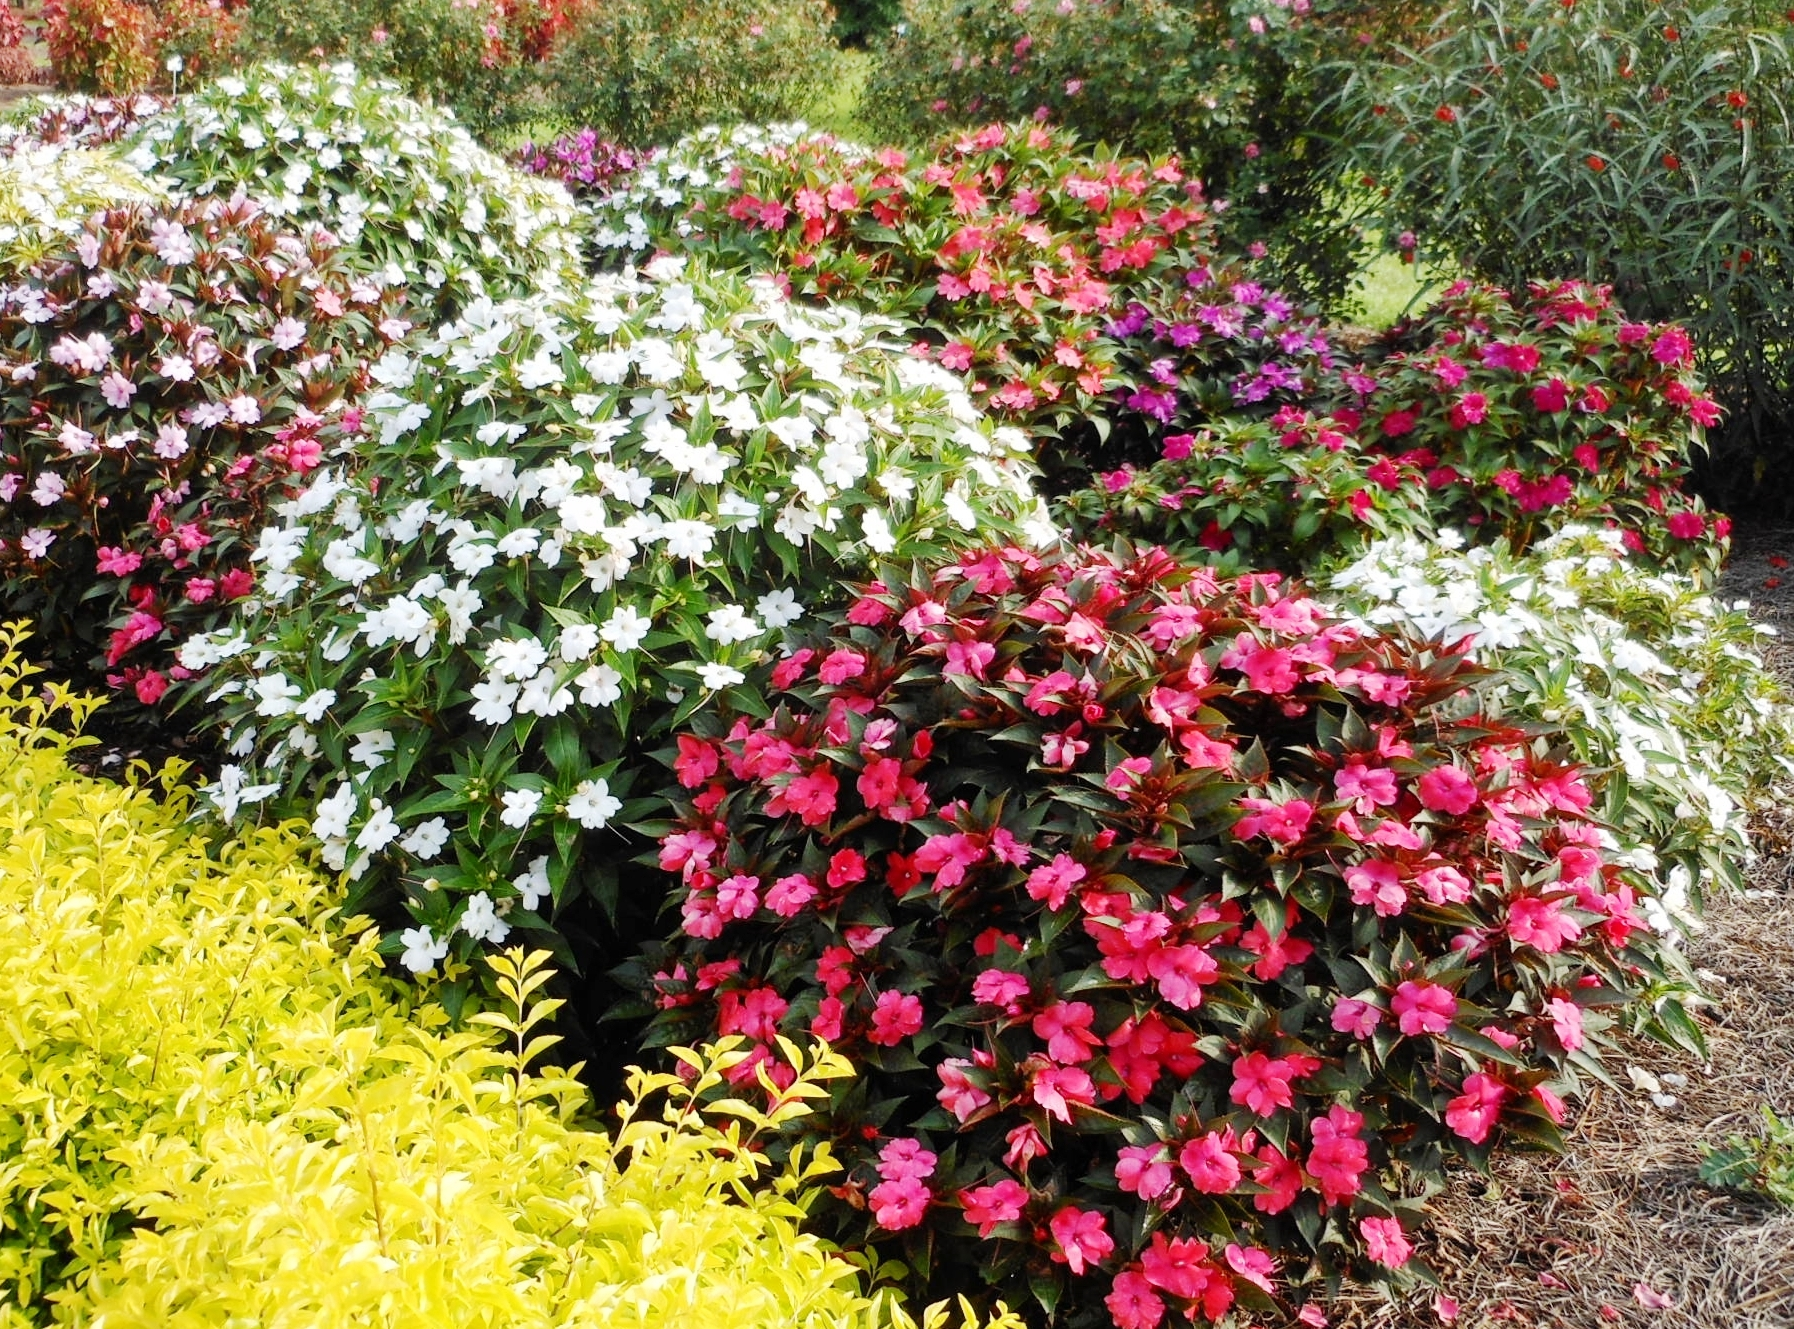 SunPatiens produce great flowers for Louisiana summers